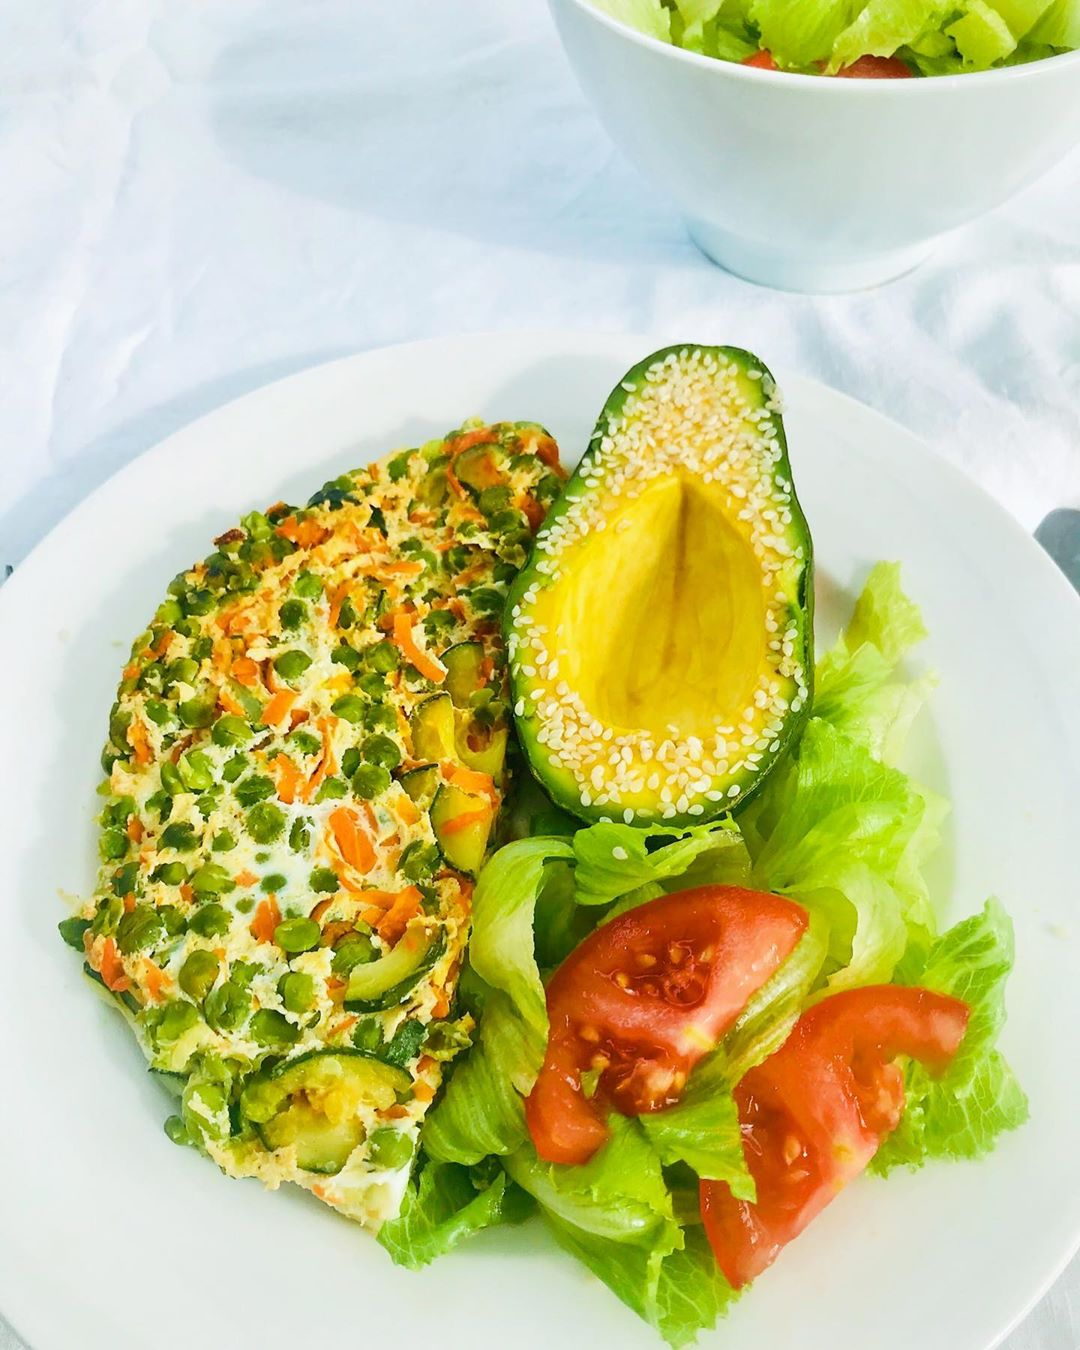 hi yall for todays lunch a  healthy green display image  29905e4c